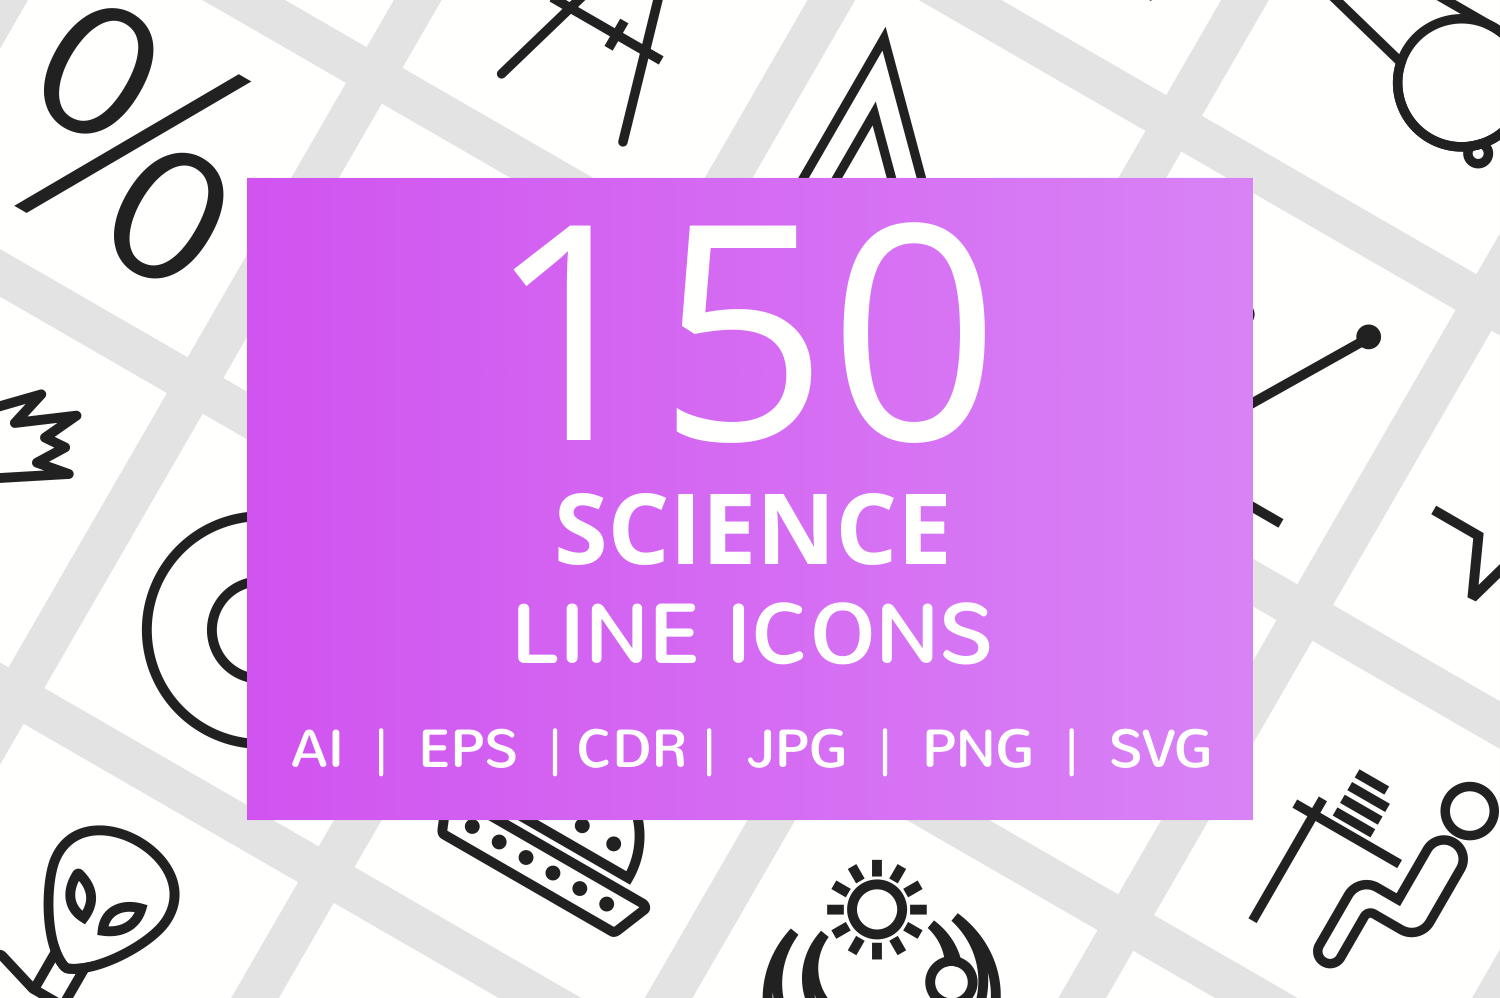 150 Science Line Icons example image 1